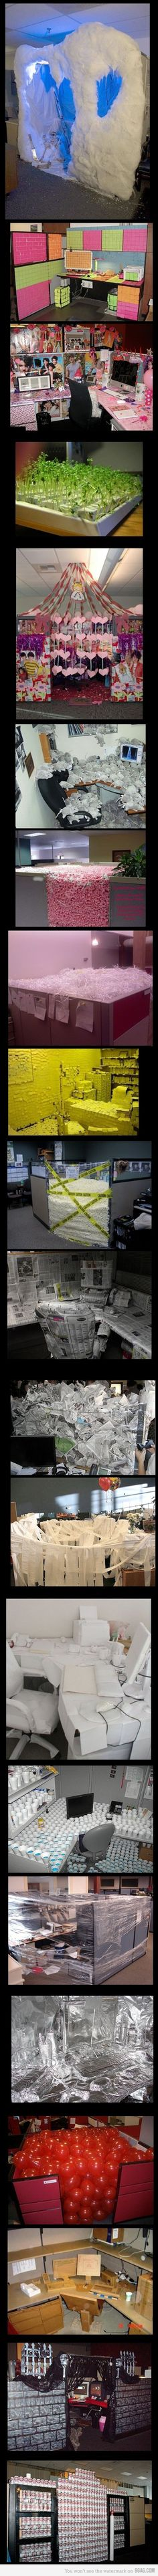 office pranks...would have loved to do this back in the day of cubicles with the IRS.  That would have been a hoot with the other agents!  Nerdy fun.